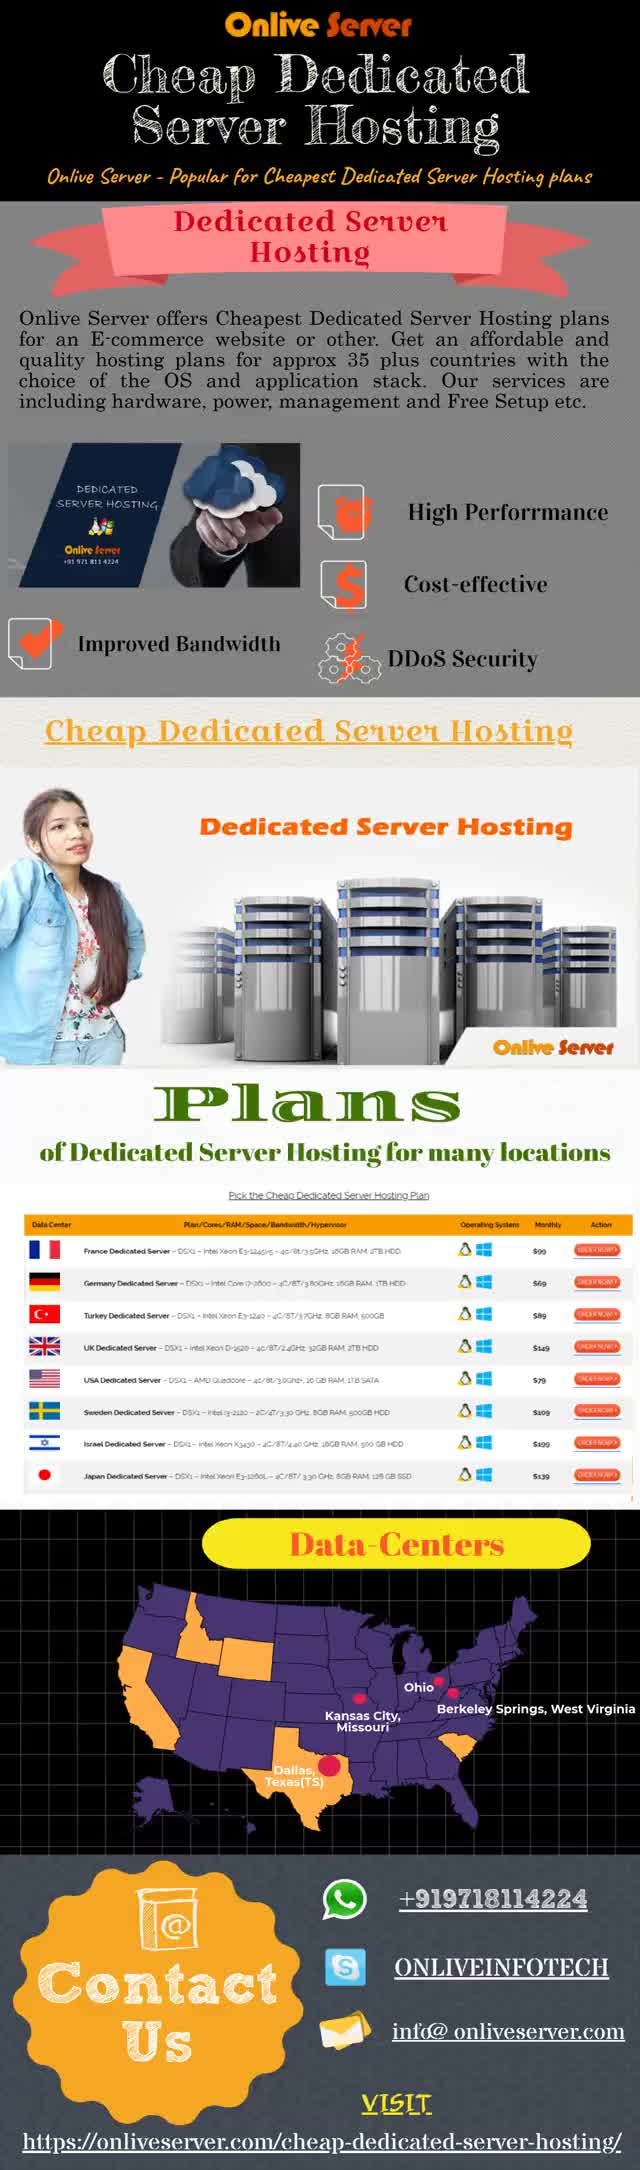 Cheap Dedicated Server Hosting Plans by Onlive Server GIF by